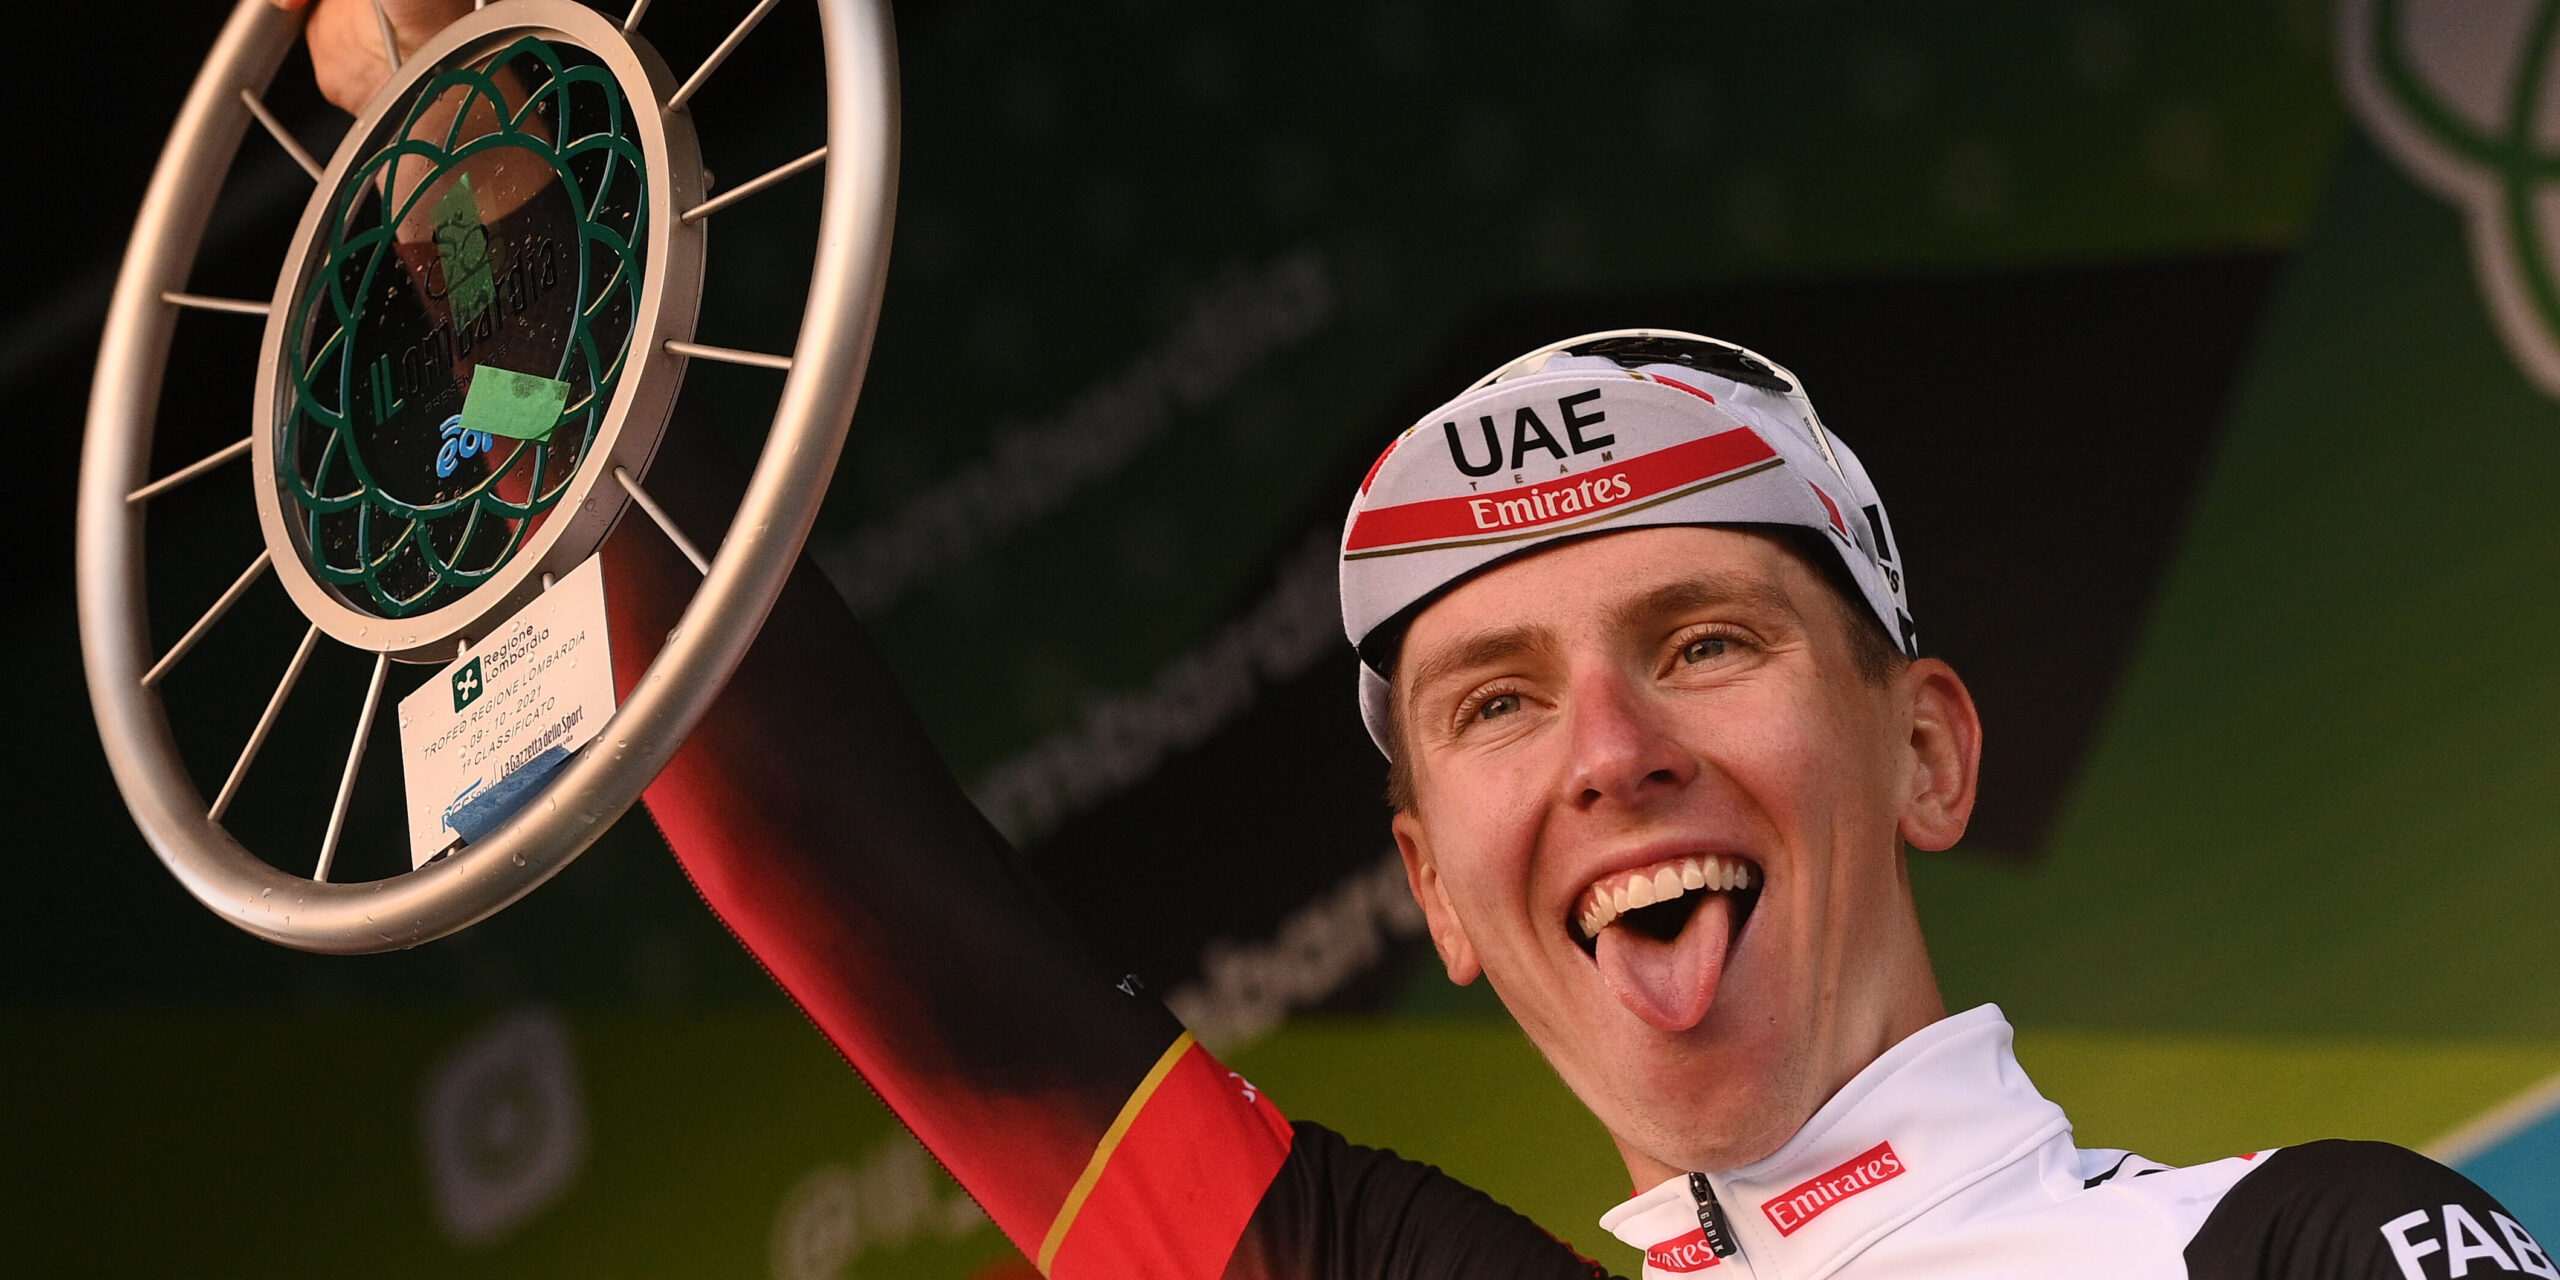 Tadej Pogačar (UAE Team Emirates) has won the 115th Il Lombardia presented by Eolo, raced over a 239km route from Como to Bergamo